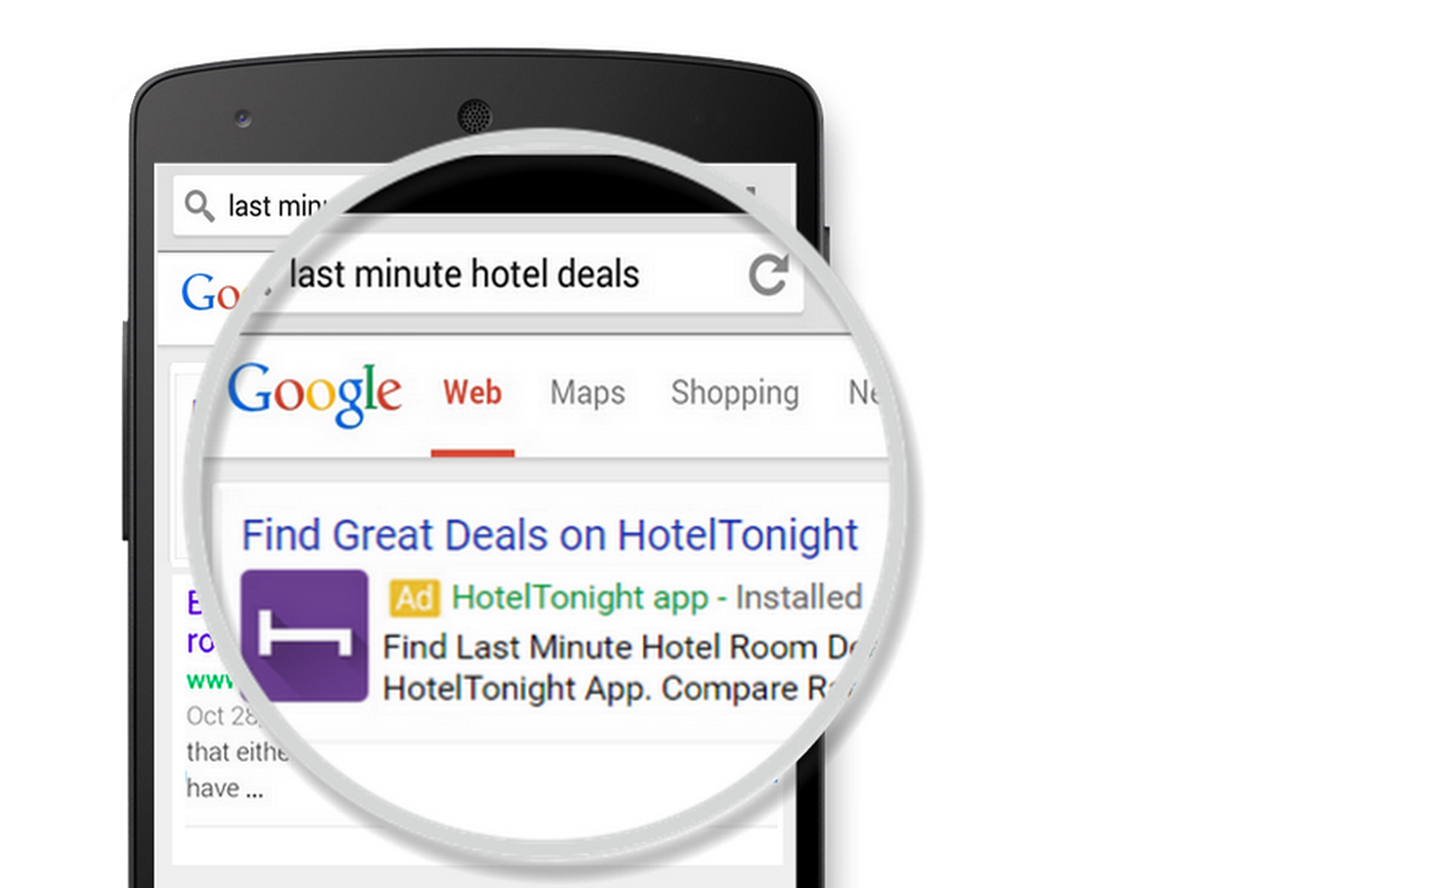 deep-links-within-mobile-app-engagement-search-ads (1)